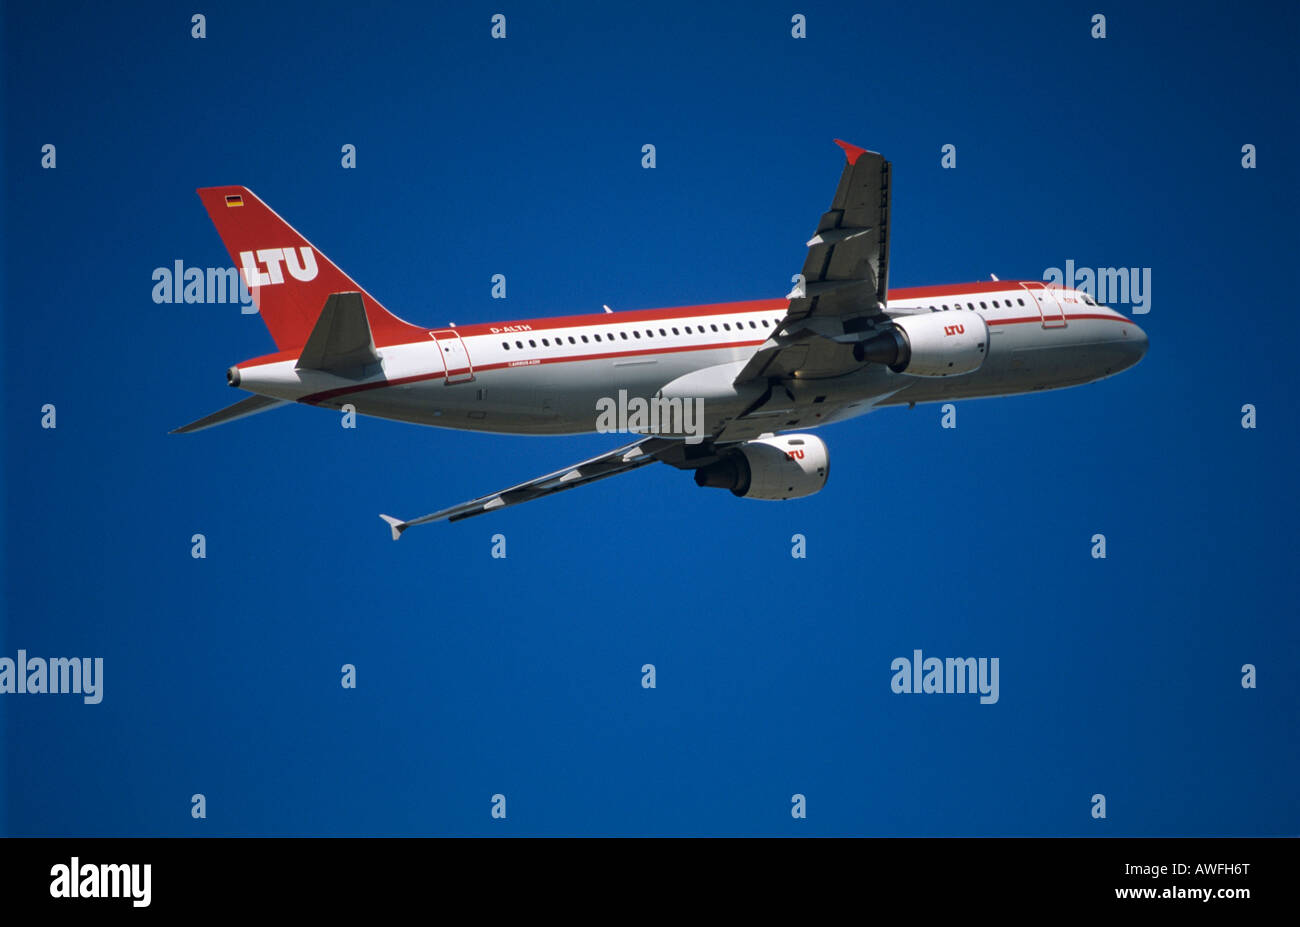 LTU airlines Airbus A320 shortly after take off, blue sky - Stock Image